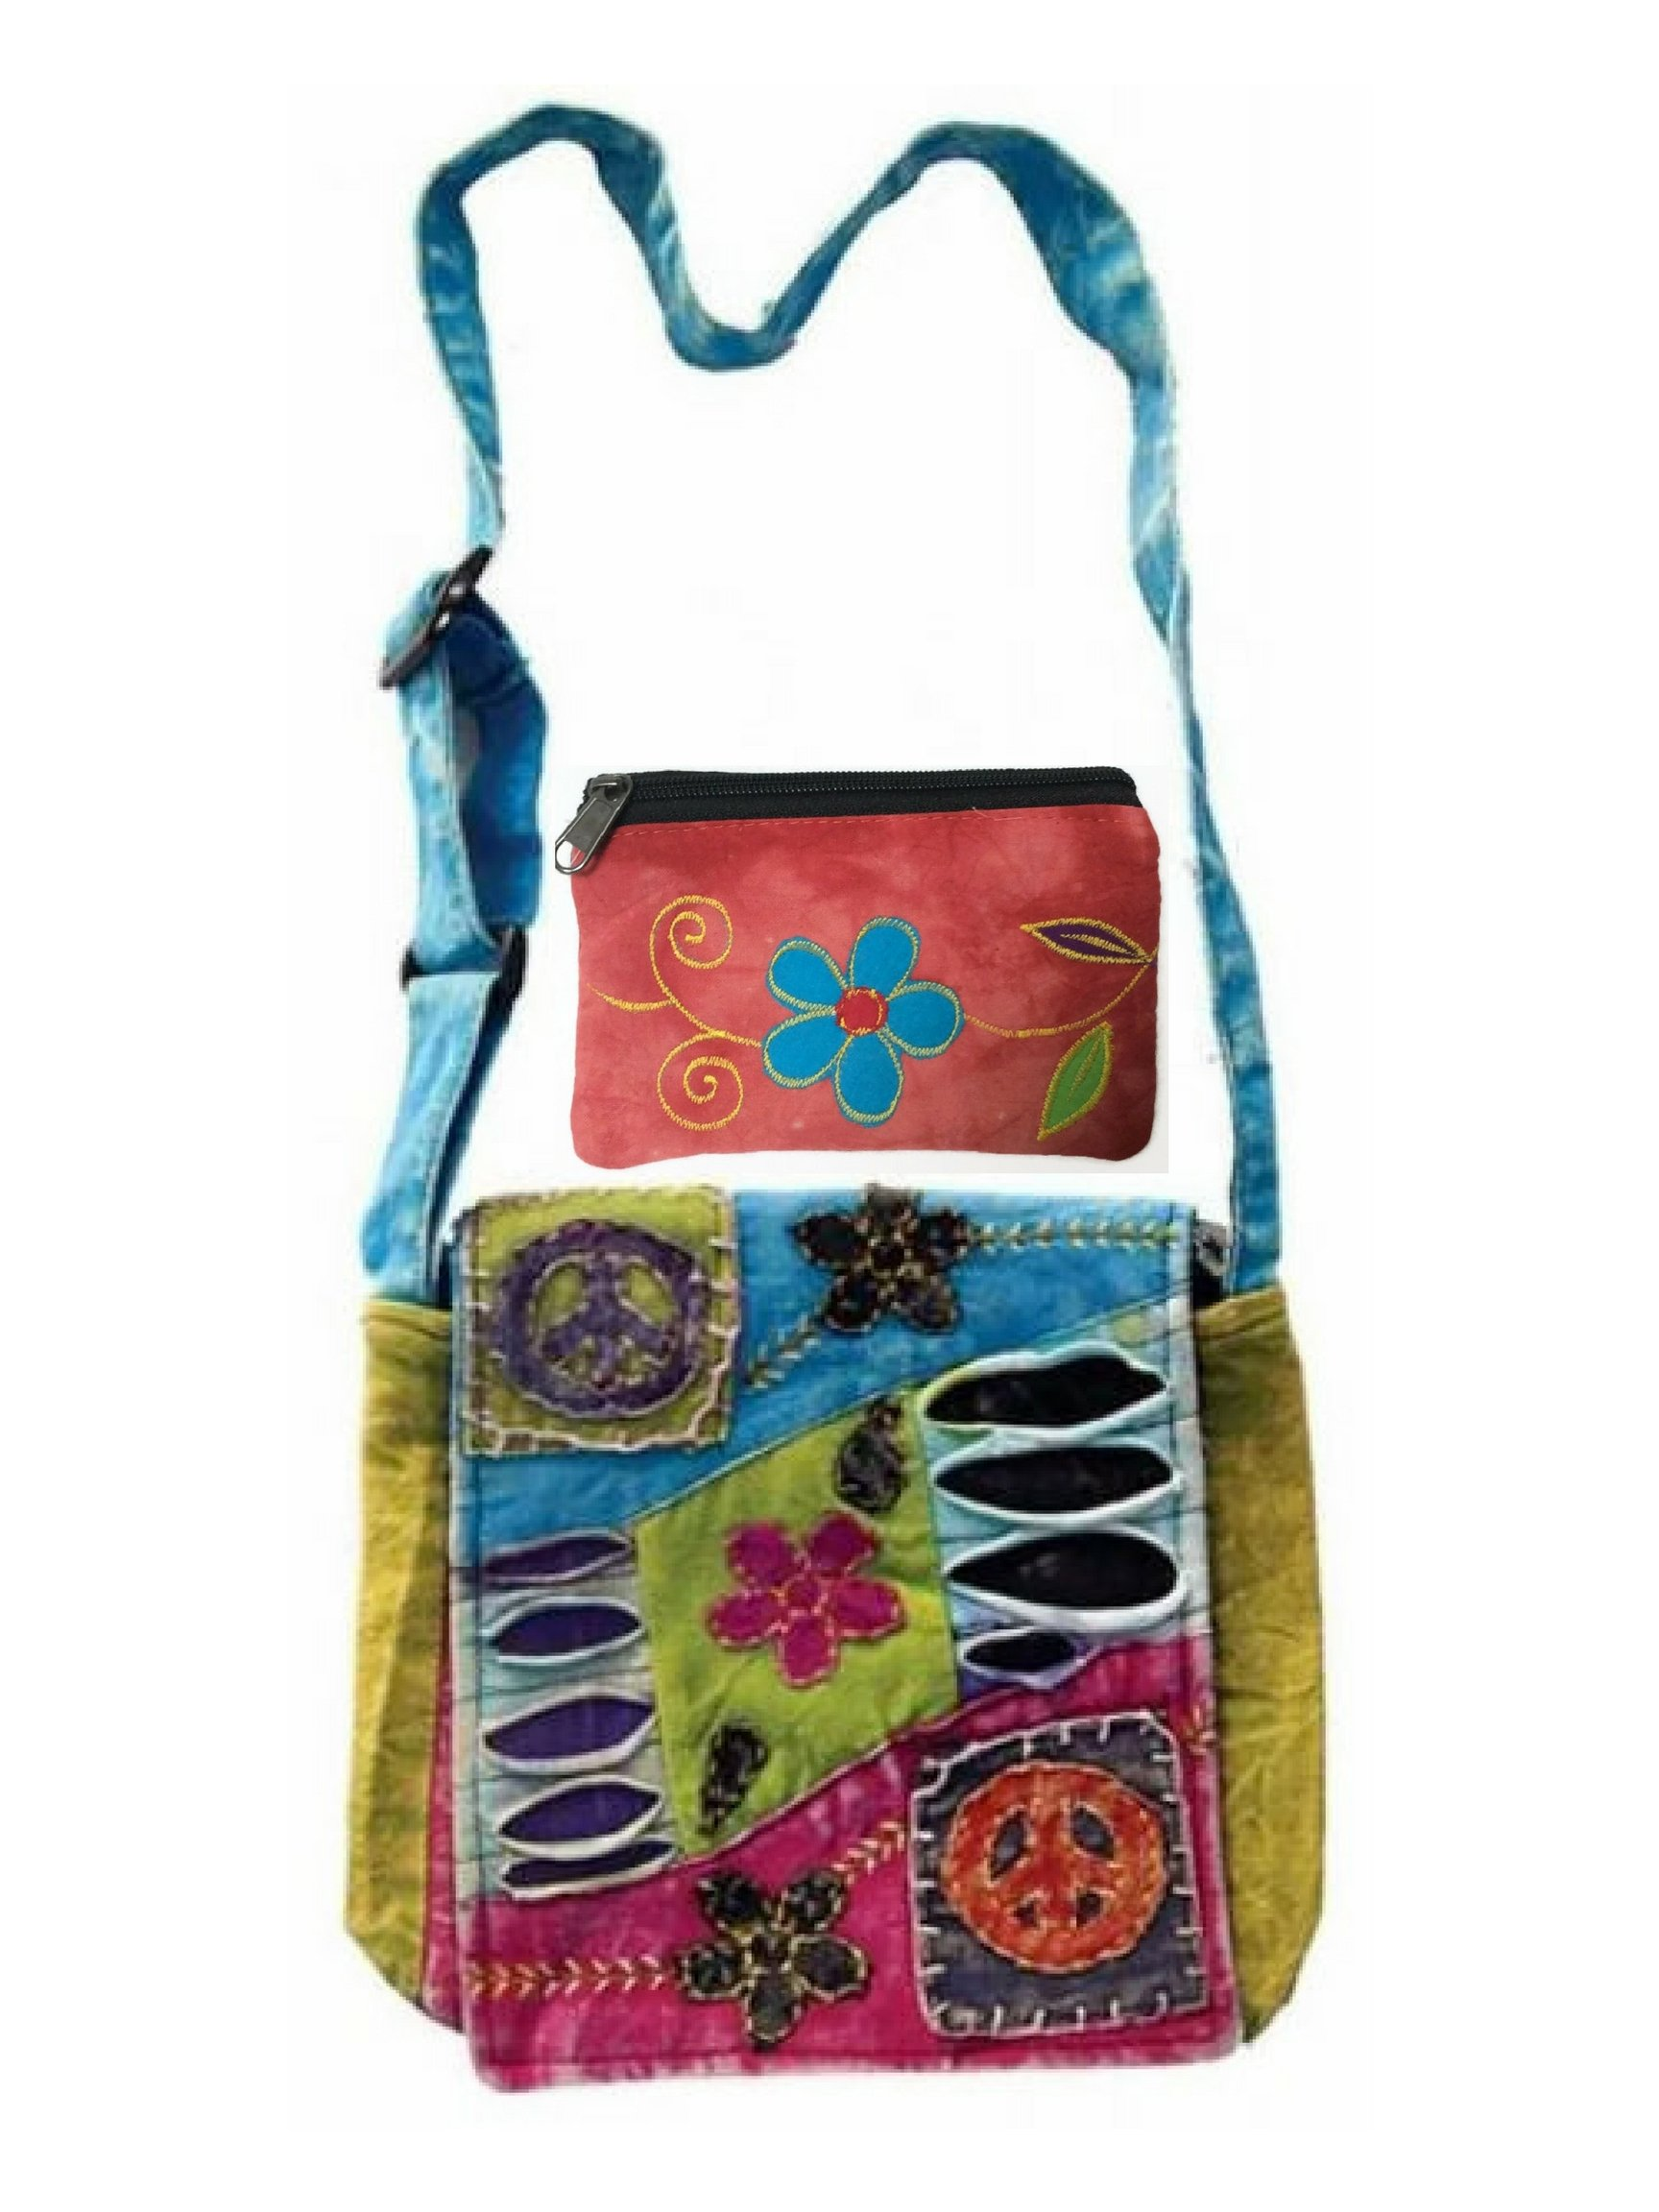 Patchwork Peace Sign Cross Body Small Messenger Shoulder Bag & Coin Money Purse Bundle Embroidered Tie Dye